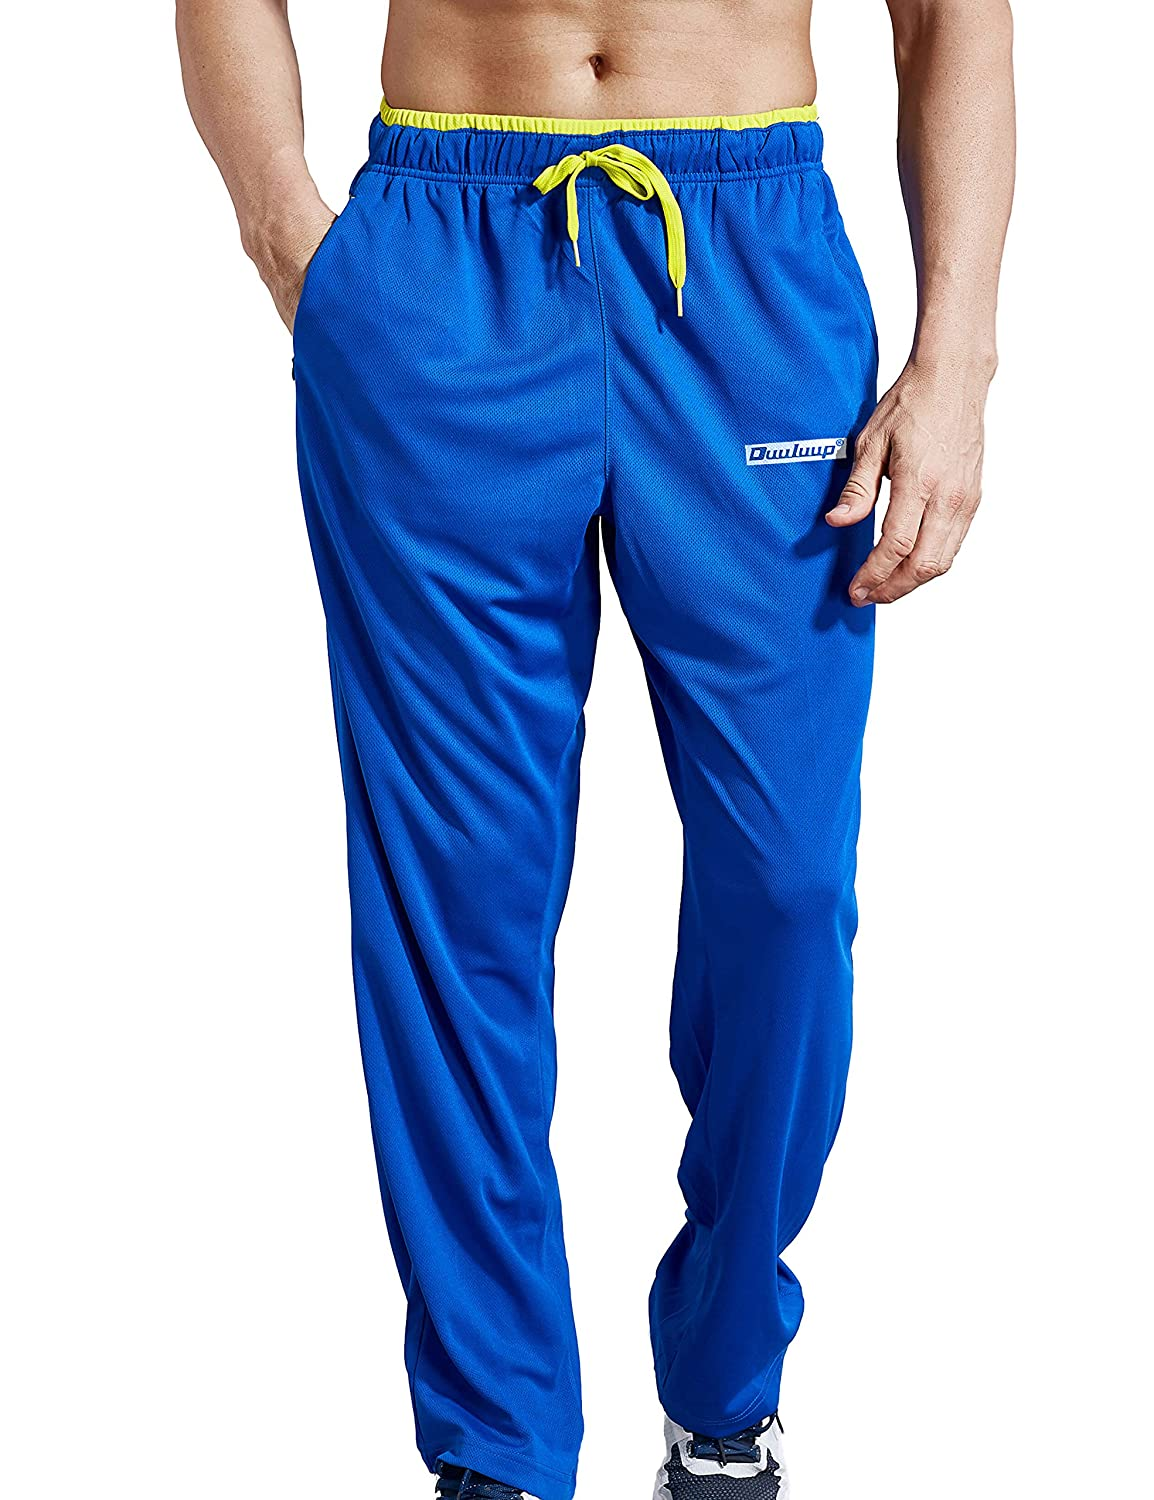 Duuluup Workout Pants Men - Quick Dry Active Sports Sweatpants Open-Hem with Pockets WWDY02